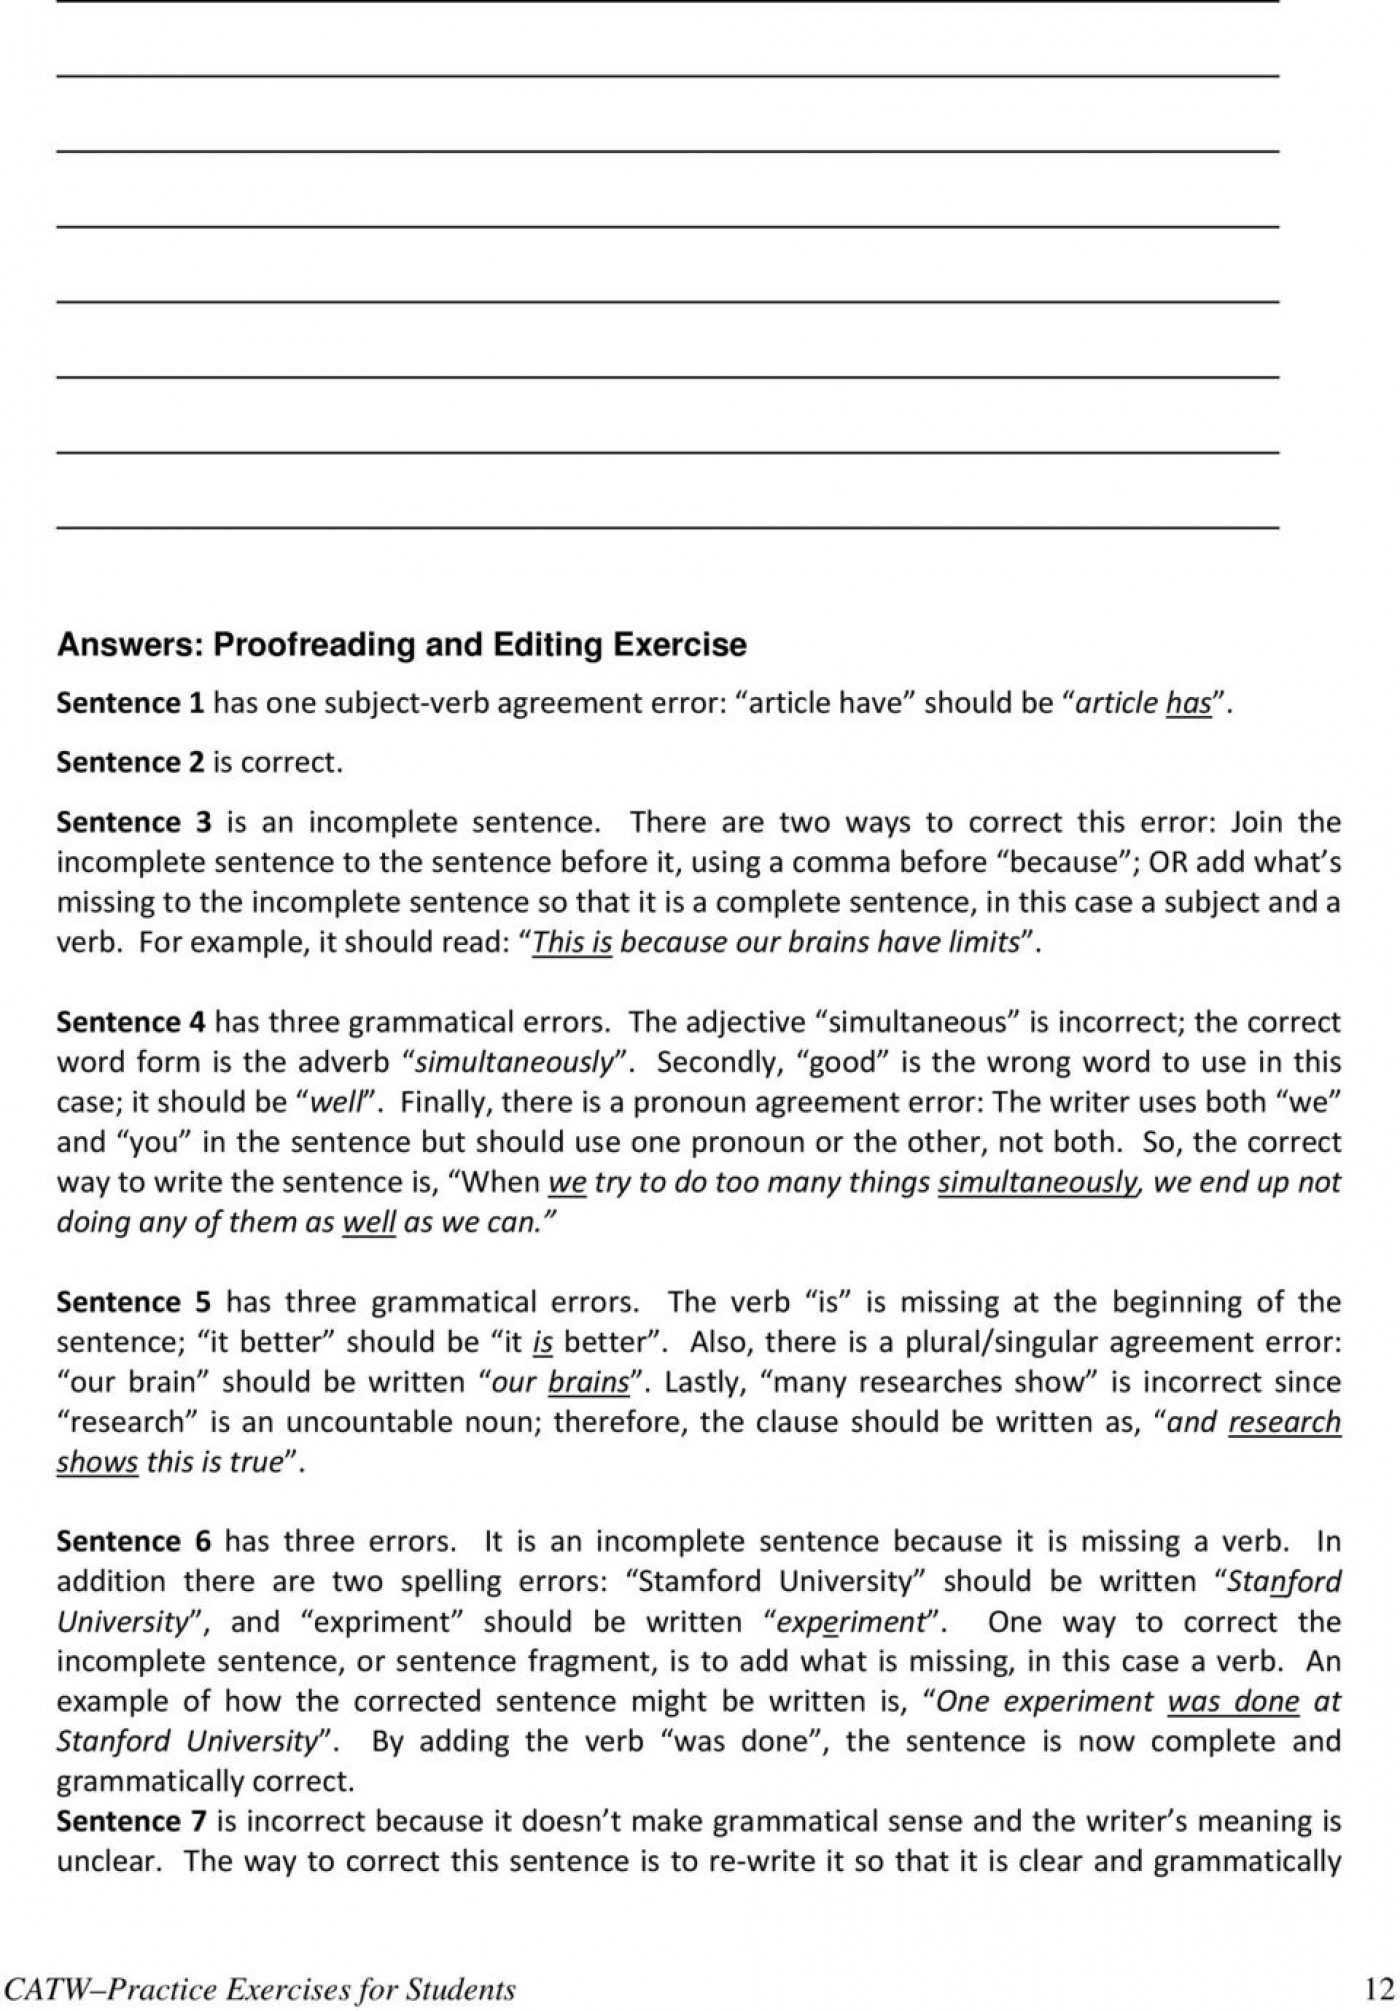 014 Essay Example Catw Samples What Is Critical Analysis Pa Beautiful Topics Practice 1400